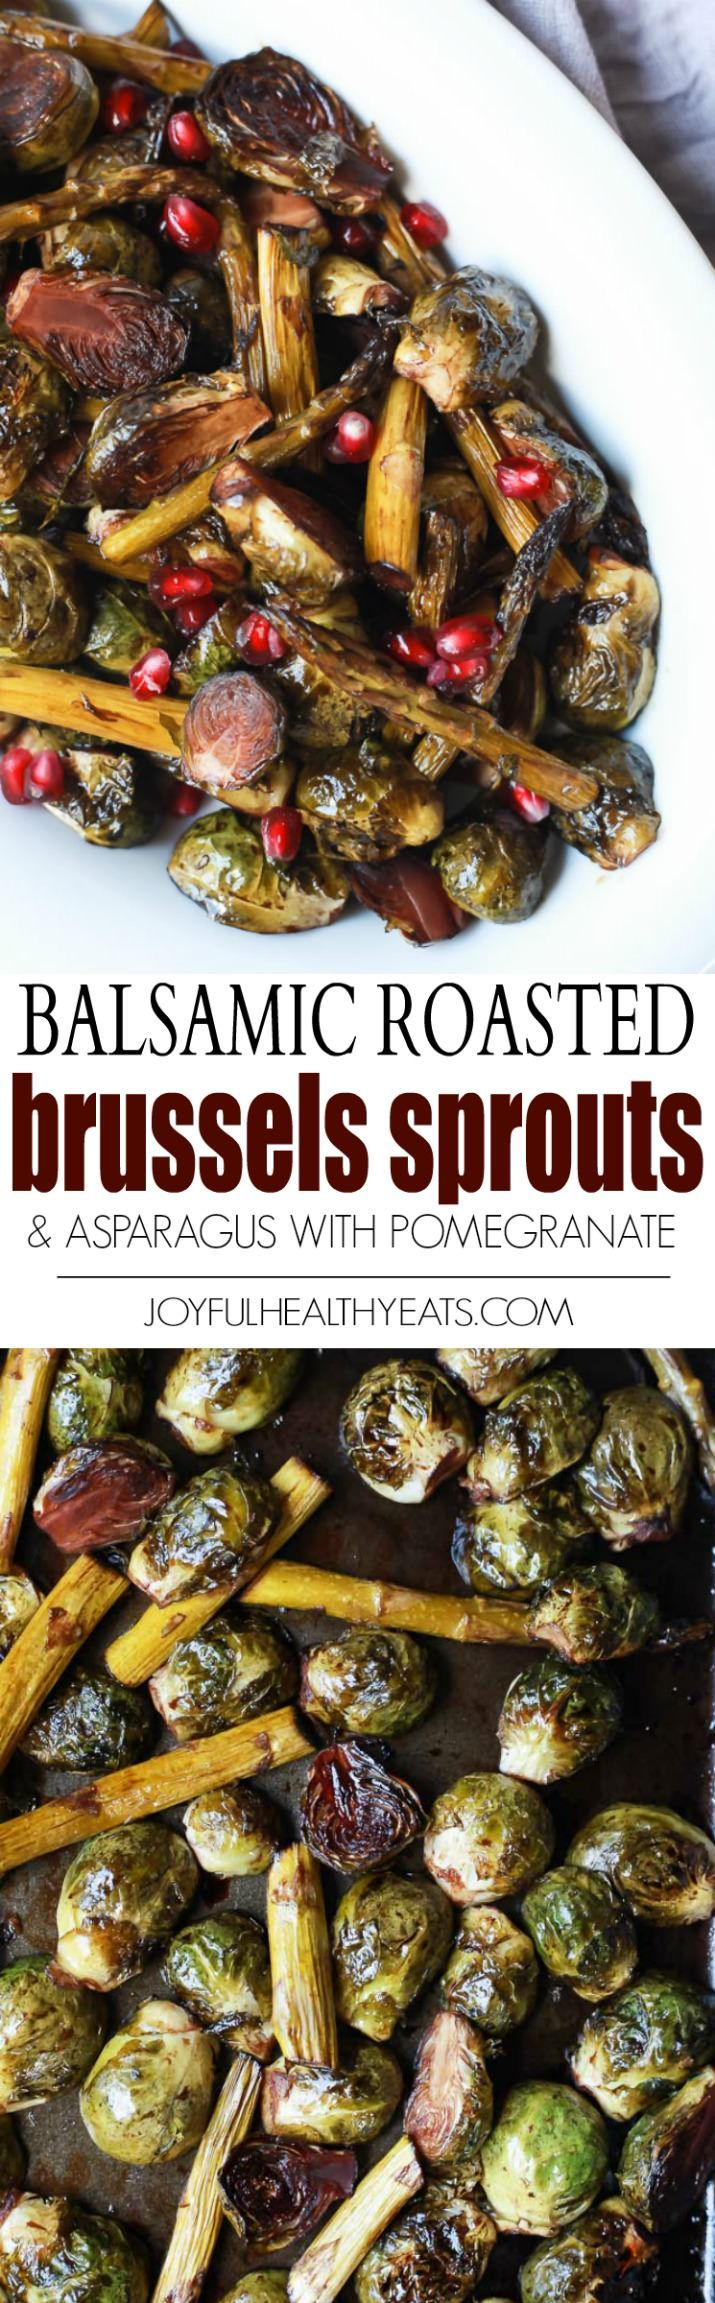 The Balsamic Glaze on these Roasted Brussels Sprouts will turn any brussels sprout hater to a lover. The pop of pomegranate make this perfect for the holidays! Easy, low in calories, healthy, and absolutely delicious!   joyfulhealthyeats.com